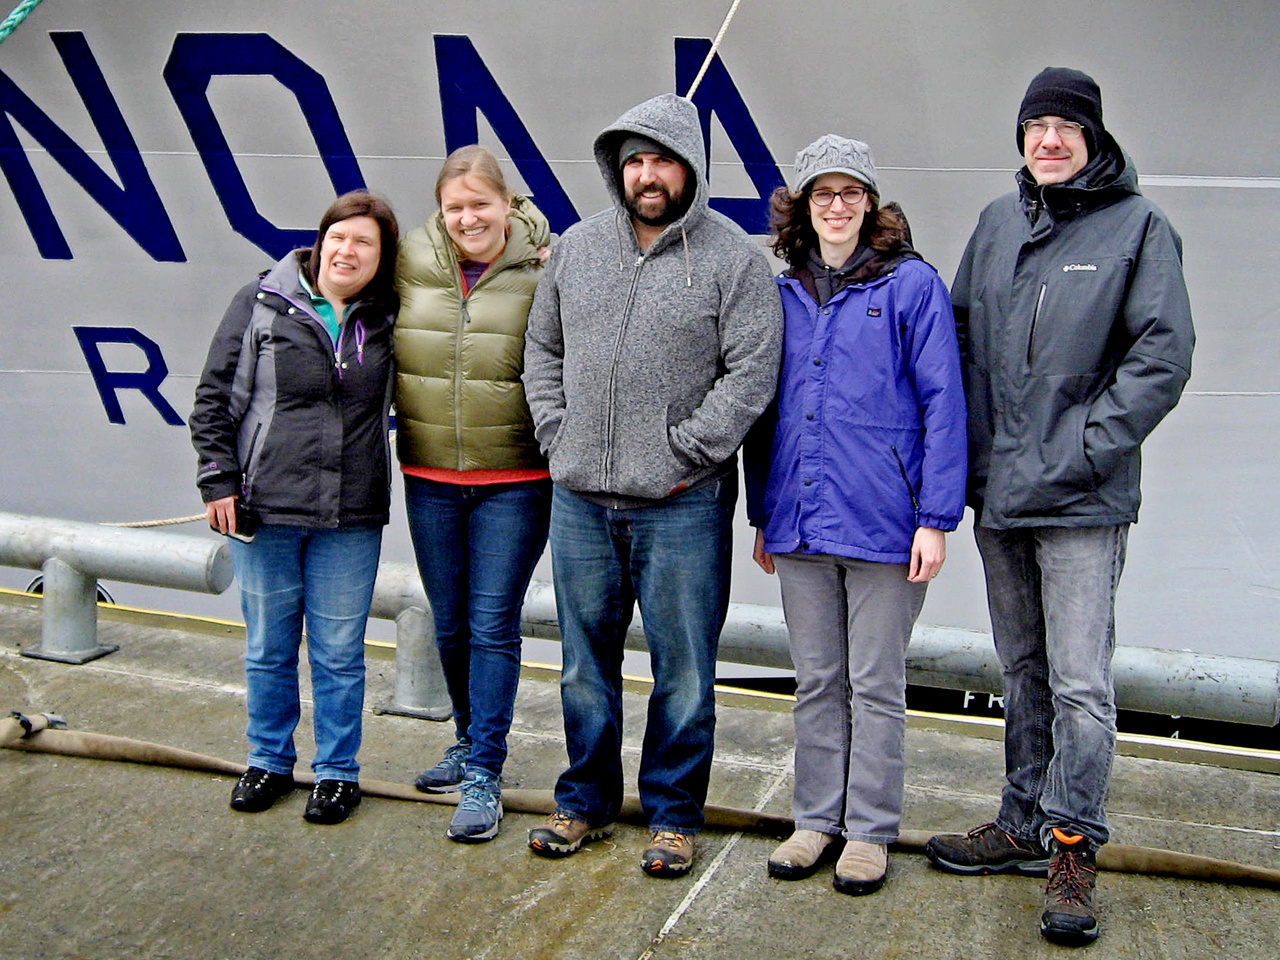 The spring survey team from left to right: Annette Dougherty (Chief Scientist, Biological Oceanographer/Fisheries Biologist), Hillary Thalmann (OSU Grad Student), Jesse Lamb (Zooplankton Researcher), Colleen Harpold (Zooplankton Research), and Steve Porter (Fisheries Biologist)..jpg